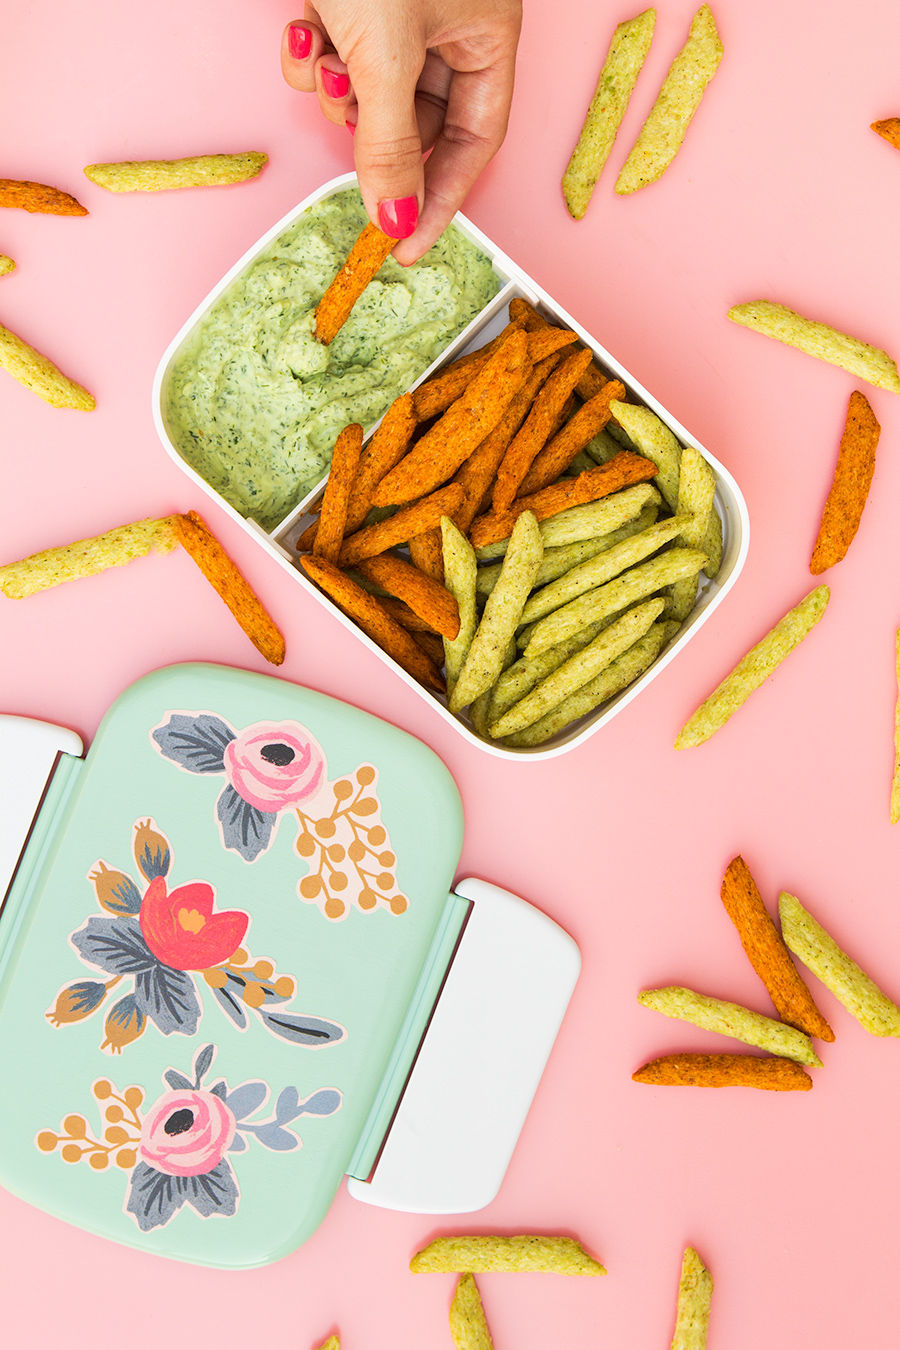 You can make this skinny green goddess dip is just 5 minutes. Click through for the recipe and tutorial on making these cute floral bento boxes too!